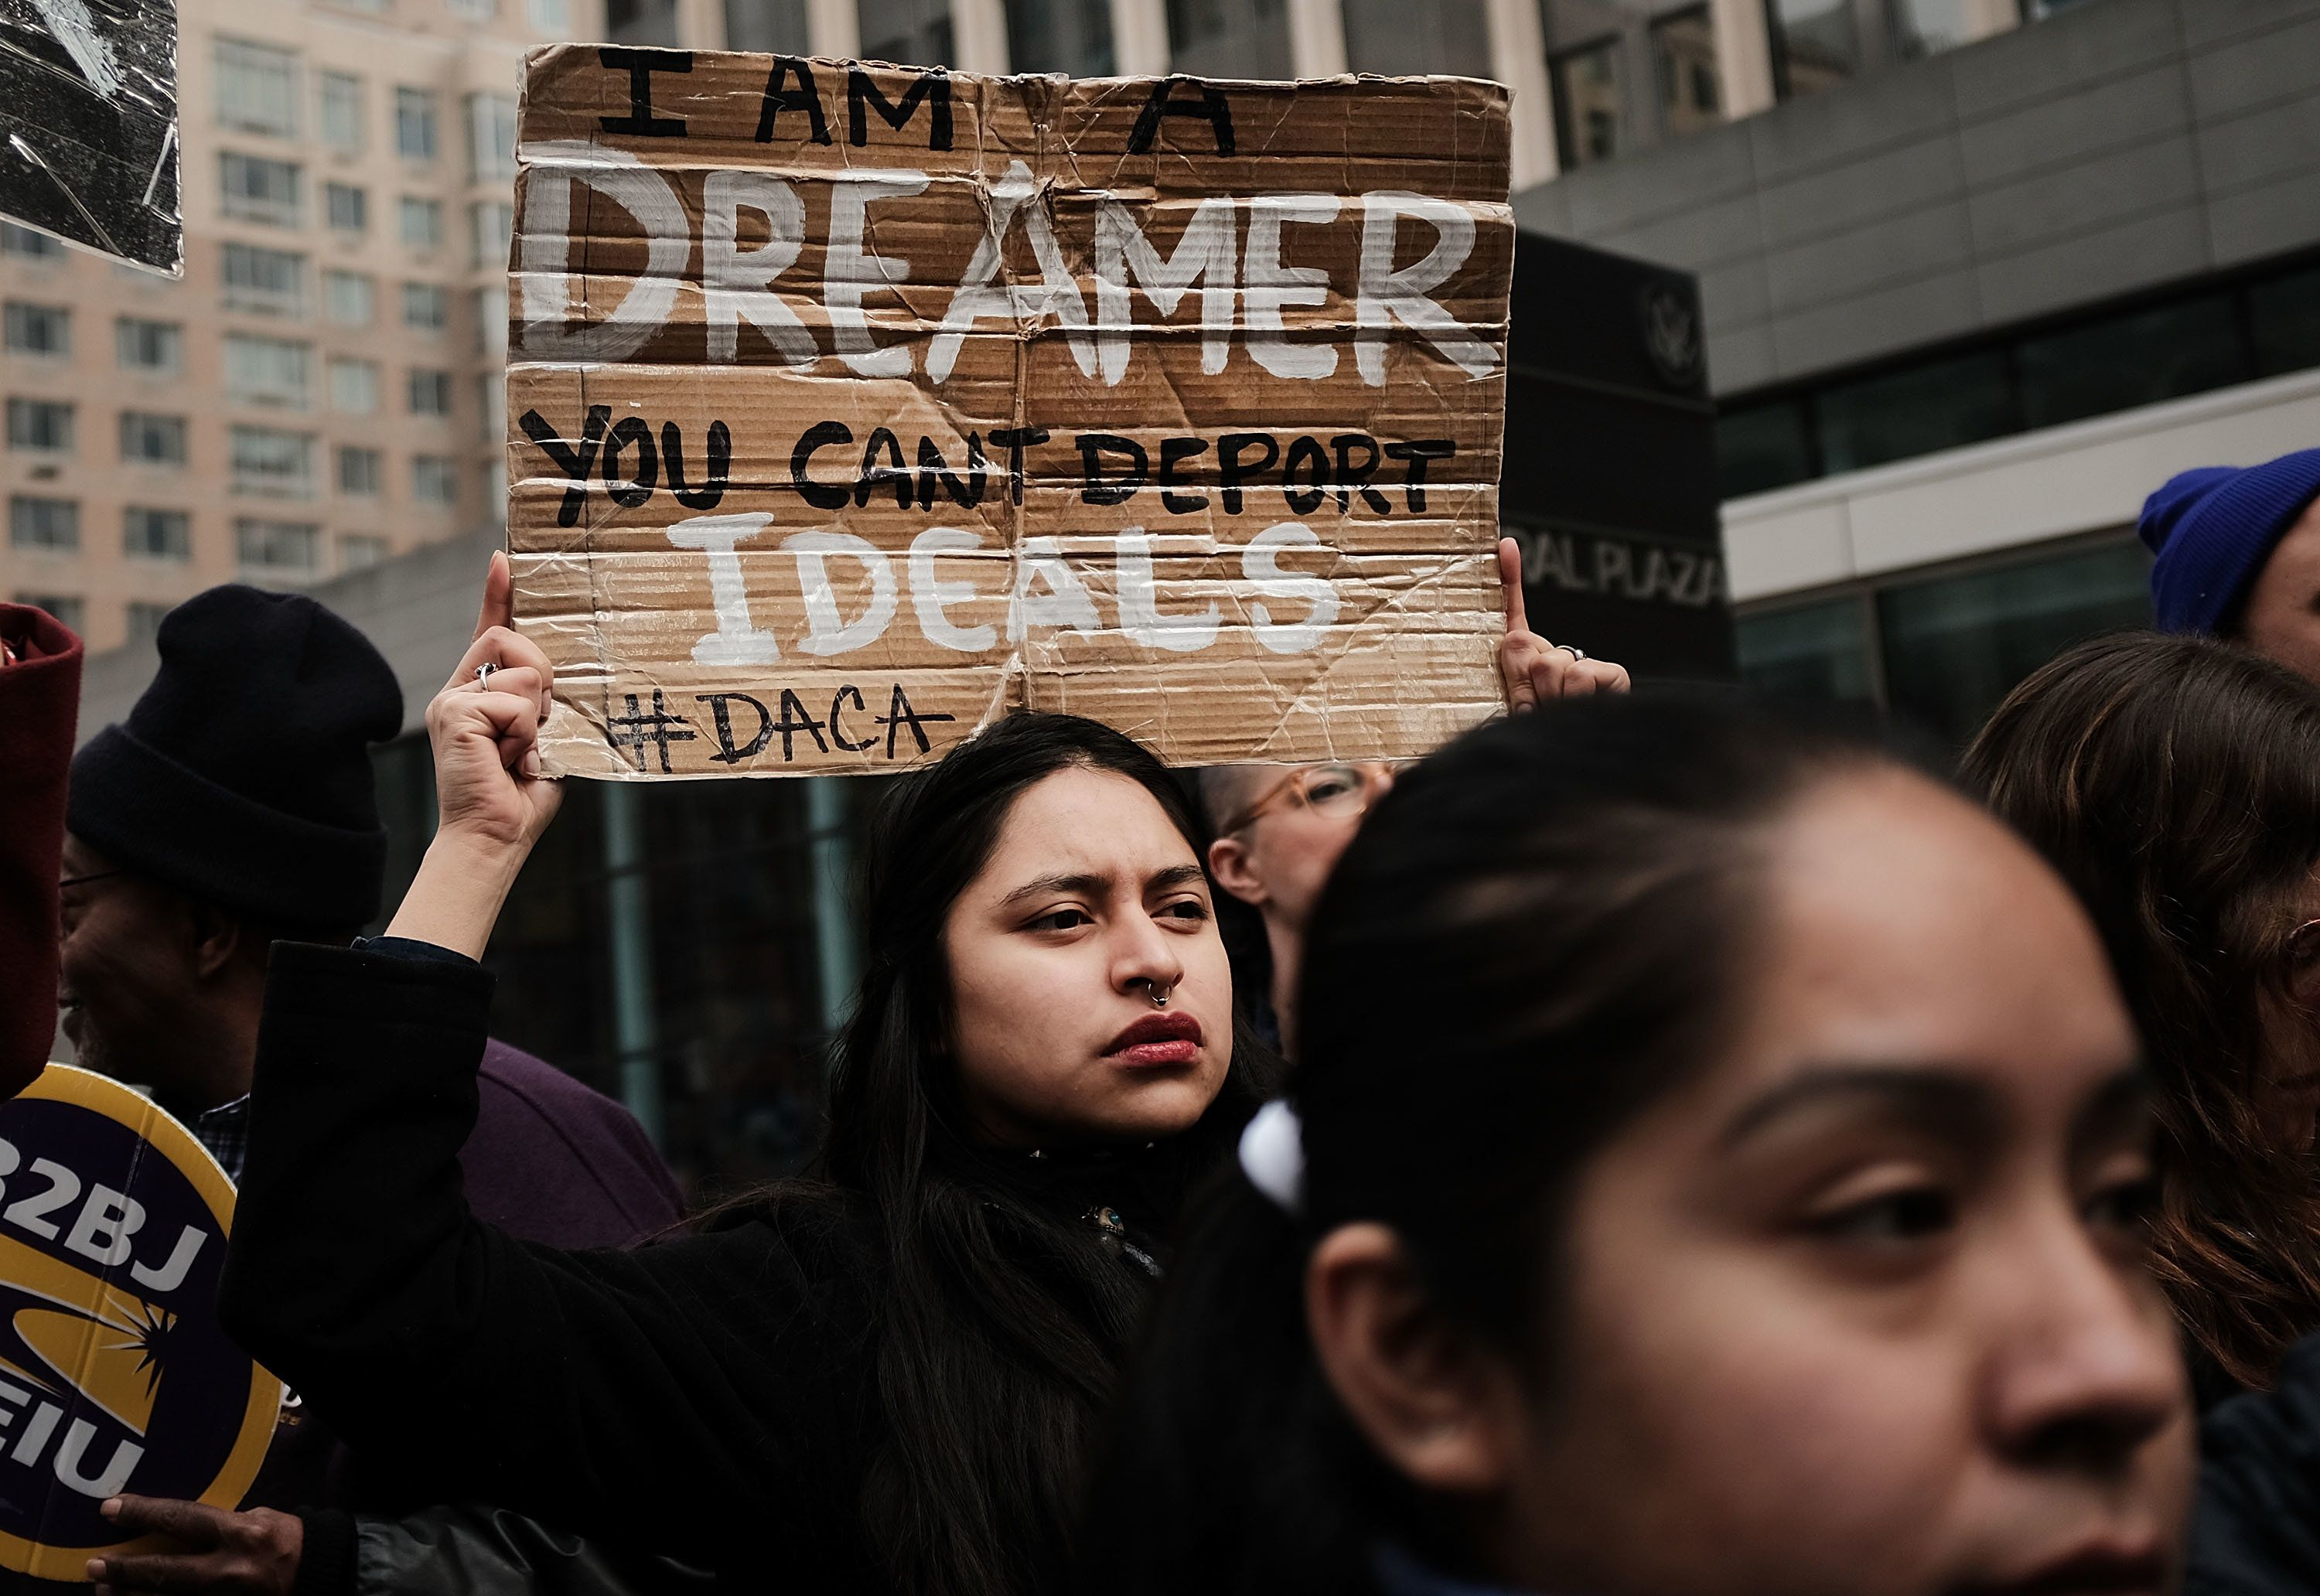 Federal judge: Trump administration still not justified ending DACA